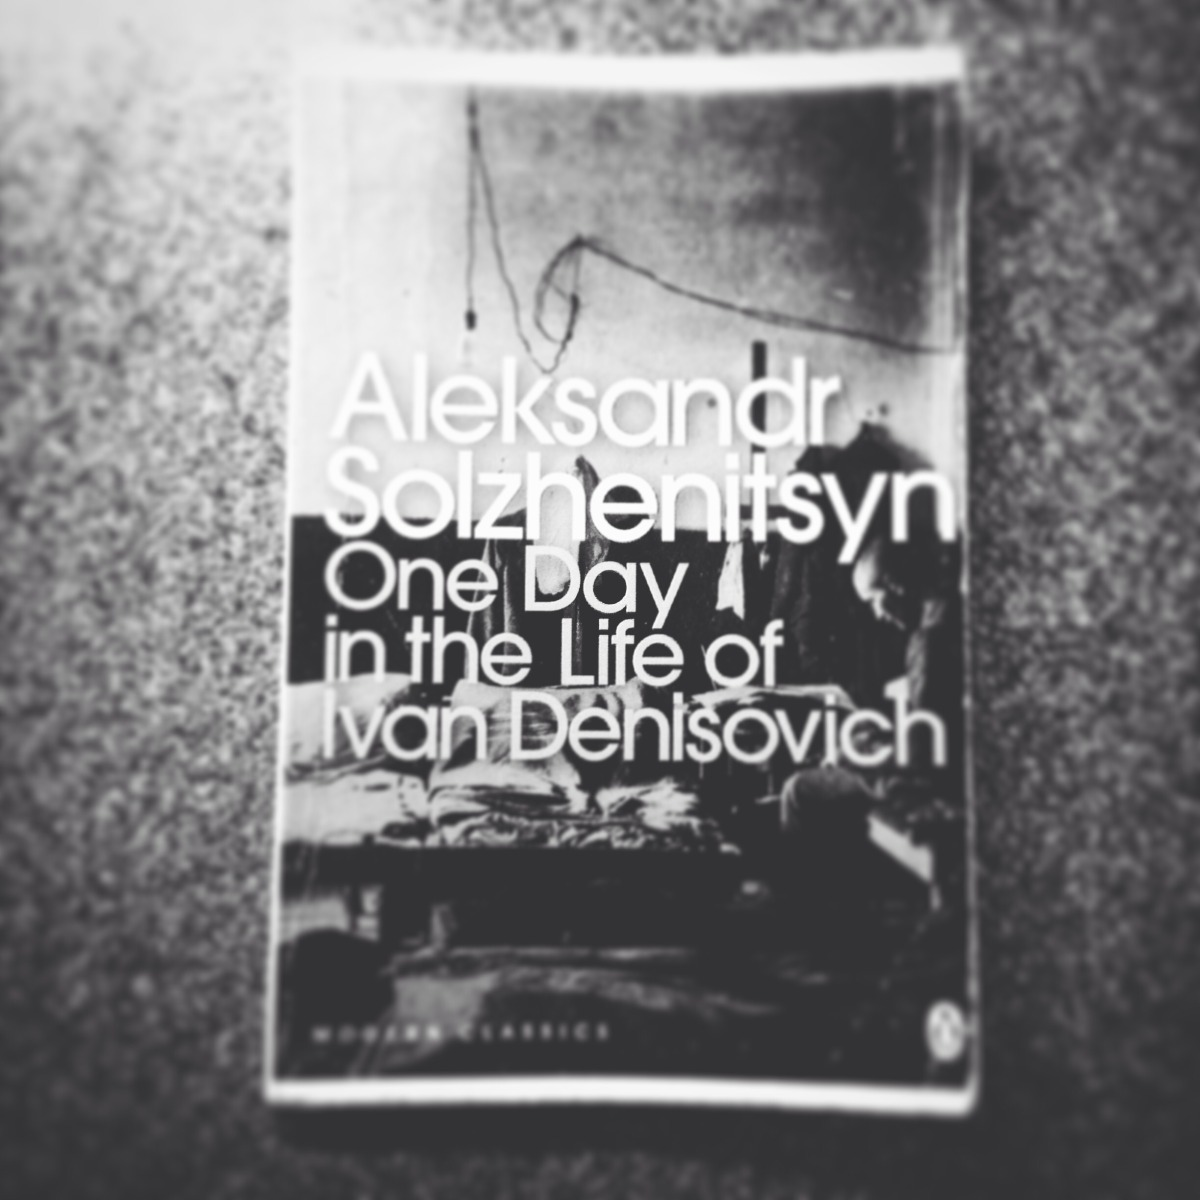 Quotes in One day in the life of Ivan Denisovich?